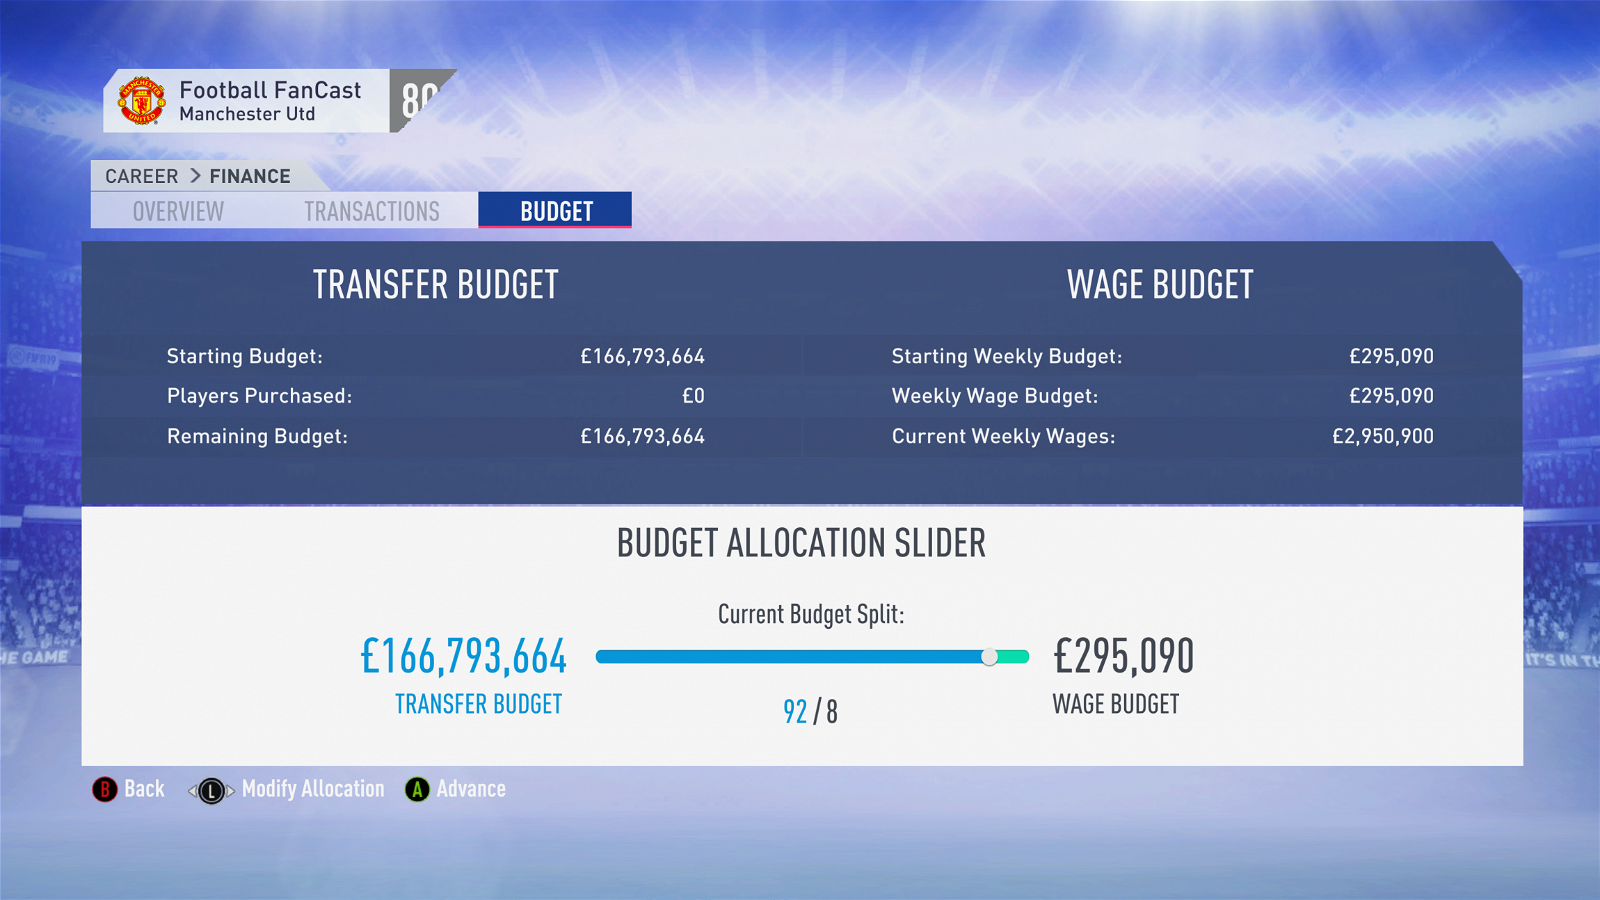 FIFA 19 Career Mode - Manchester United budget